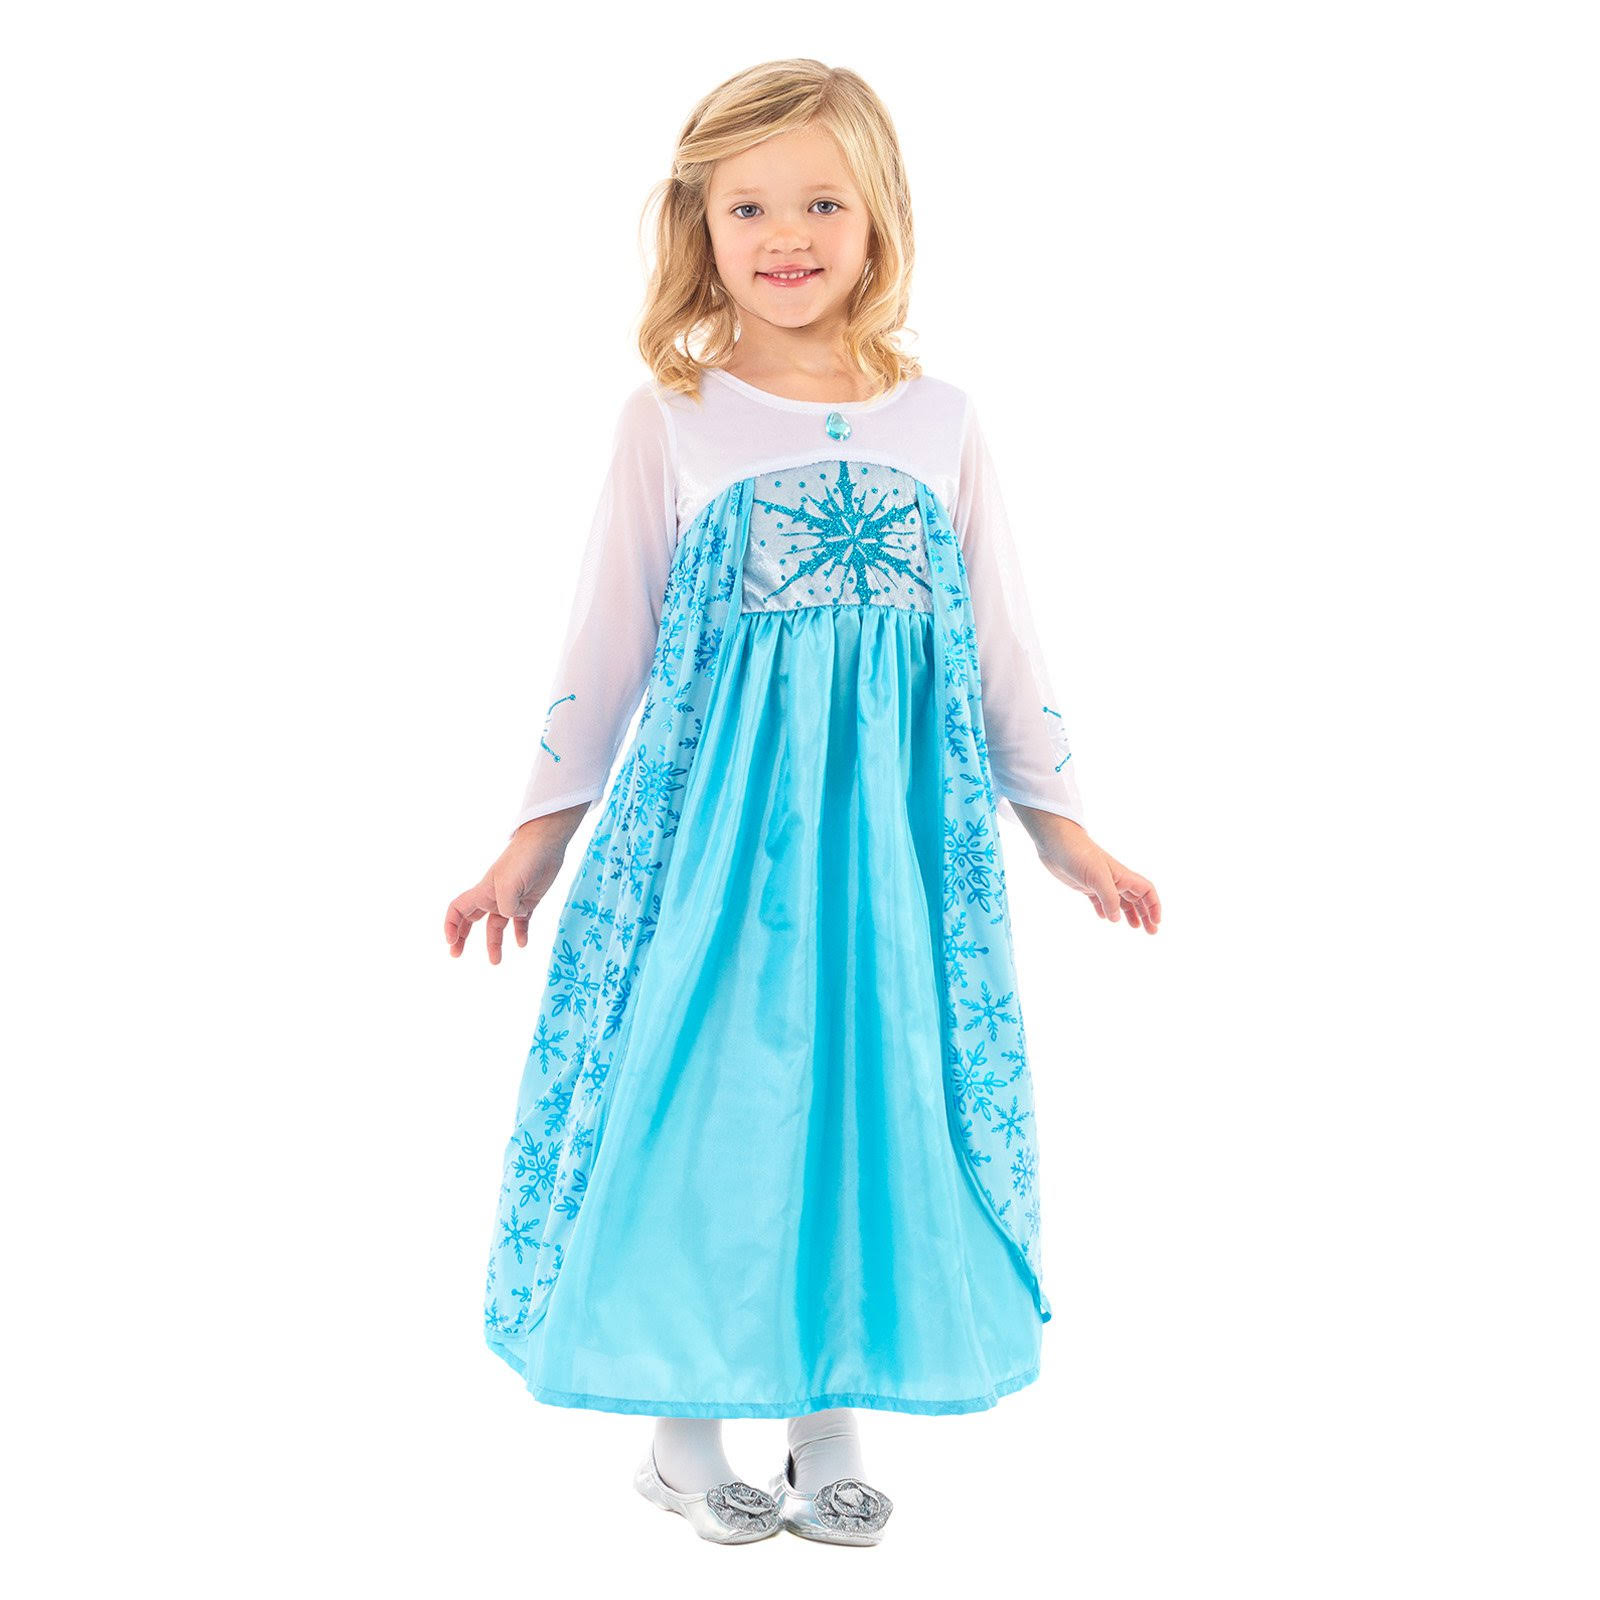 Little Adventures Ice Princess Dress Up Costume